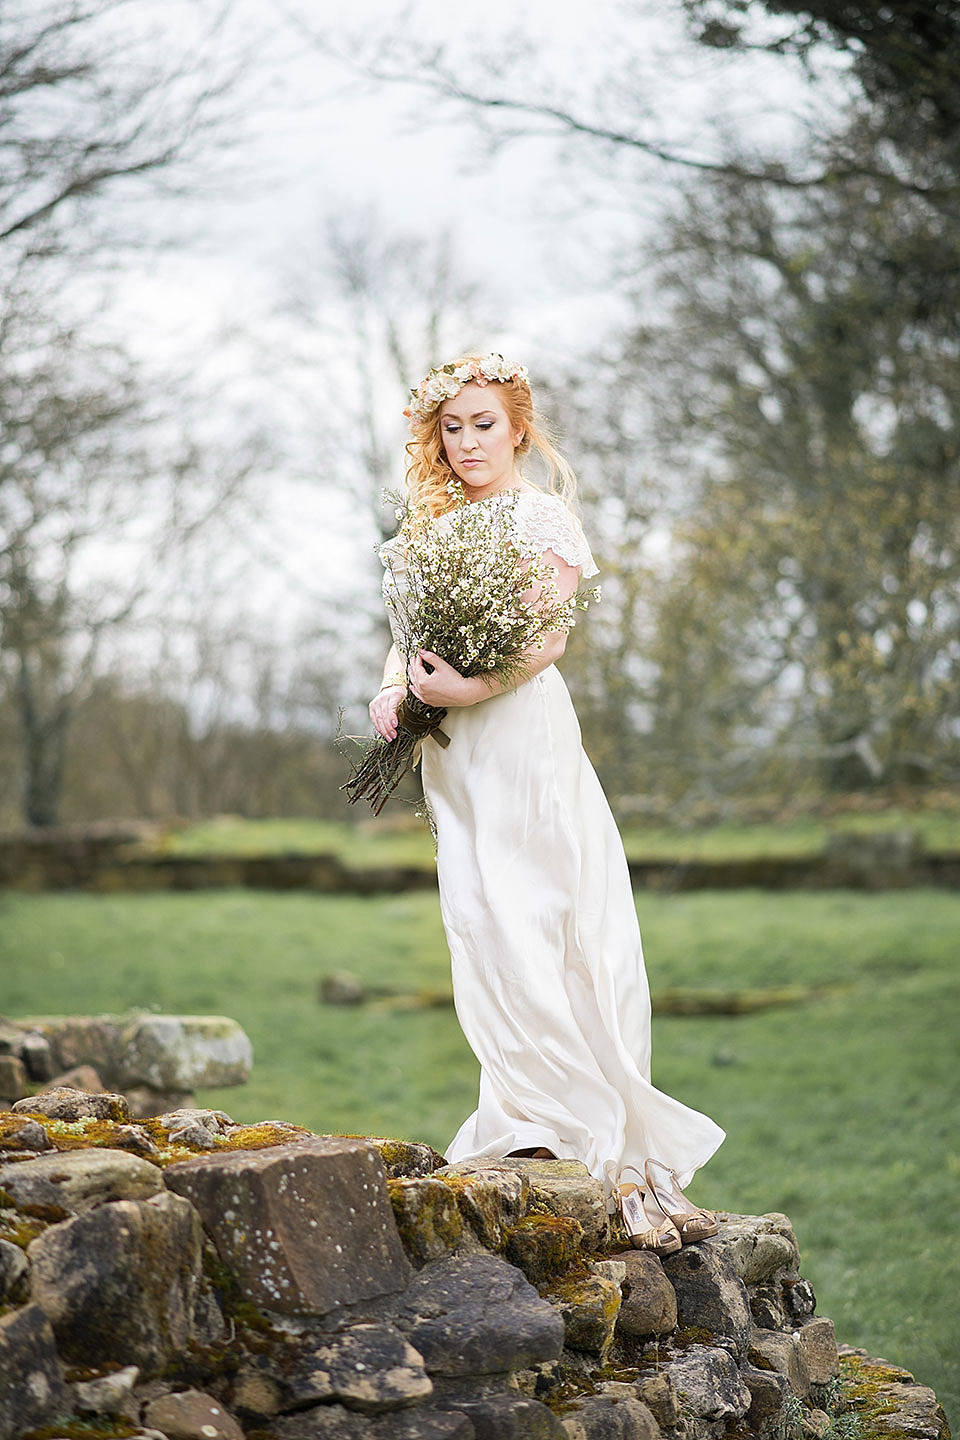 The Shepherds Purse Boutique, Whitby: A Treasure Trove Of Silk Flower Crowns, Gowns And Pretty Things (Bridal Fashion Get Inspired Mood + Inspiration Boards )